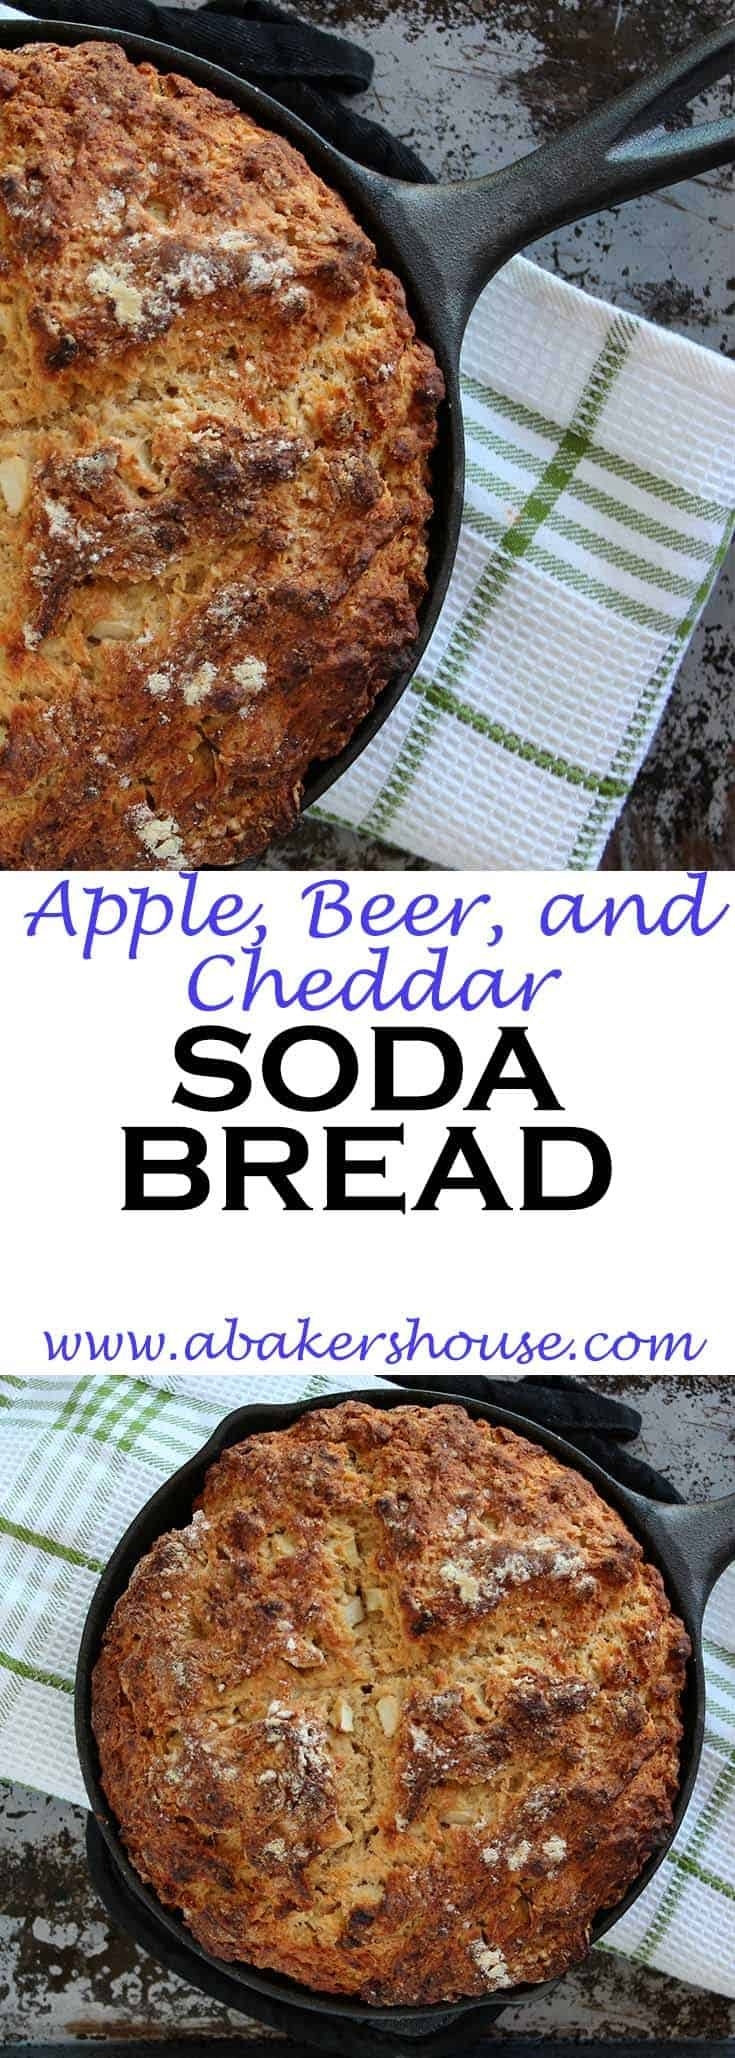 Apple, beer and cheddar soda bread is a variation on good old Irish Soda Bread. #abakershouse #irish #sodabread #beerbread